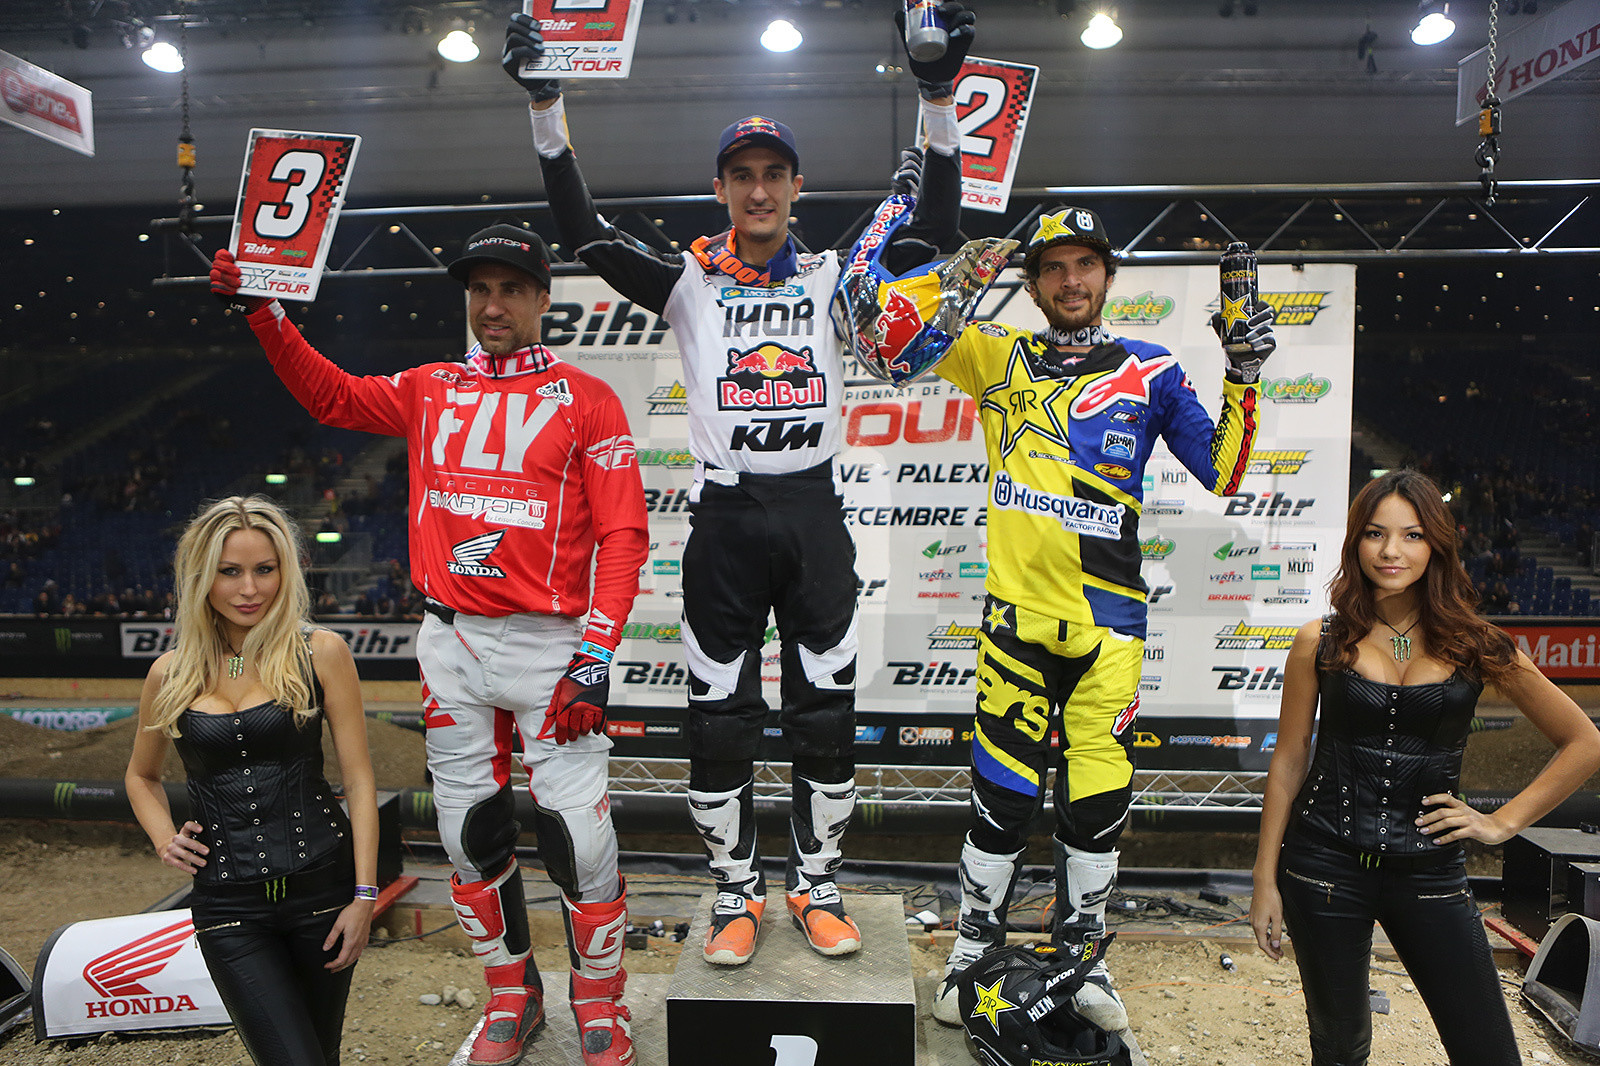 Night one goes to Marvin Musquin, with Jason Anderson and Justin Brayton rounding out the podium.